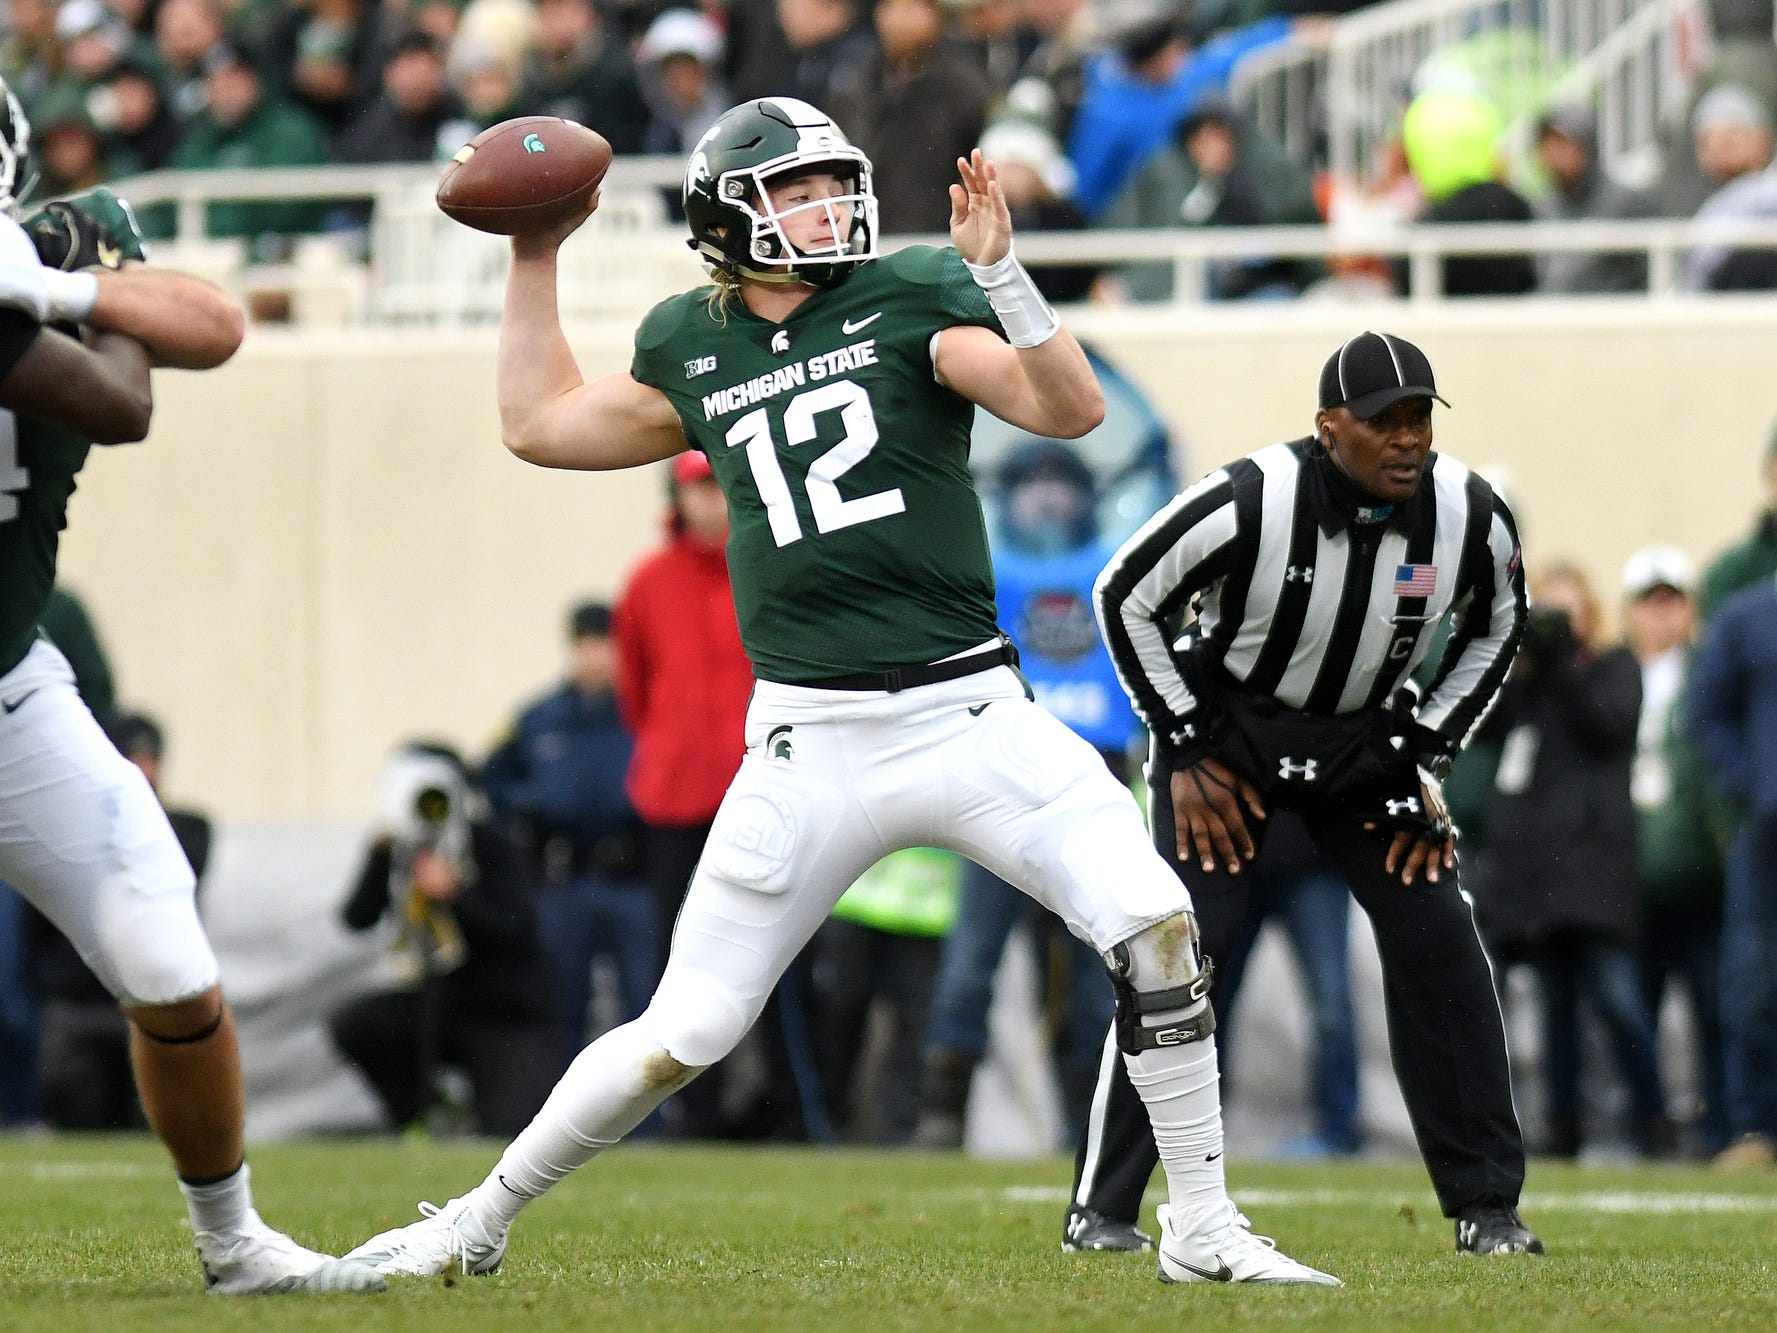 Michigan State's Rocky Lombardi throws a pass during the second quarter on Saturday, Oct. 27, 2018, at Spartan Stadium in East Lansing.